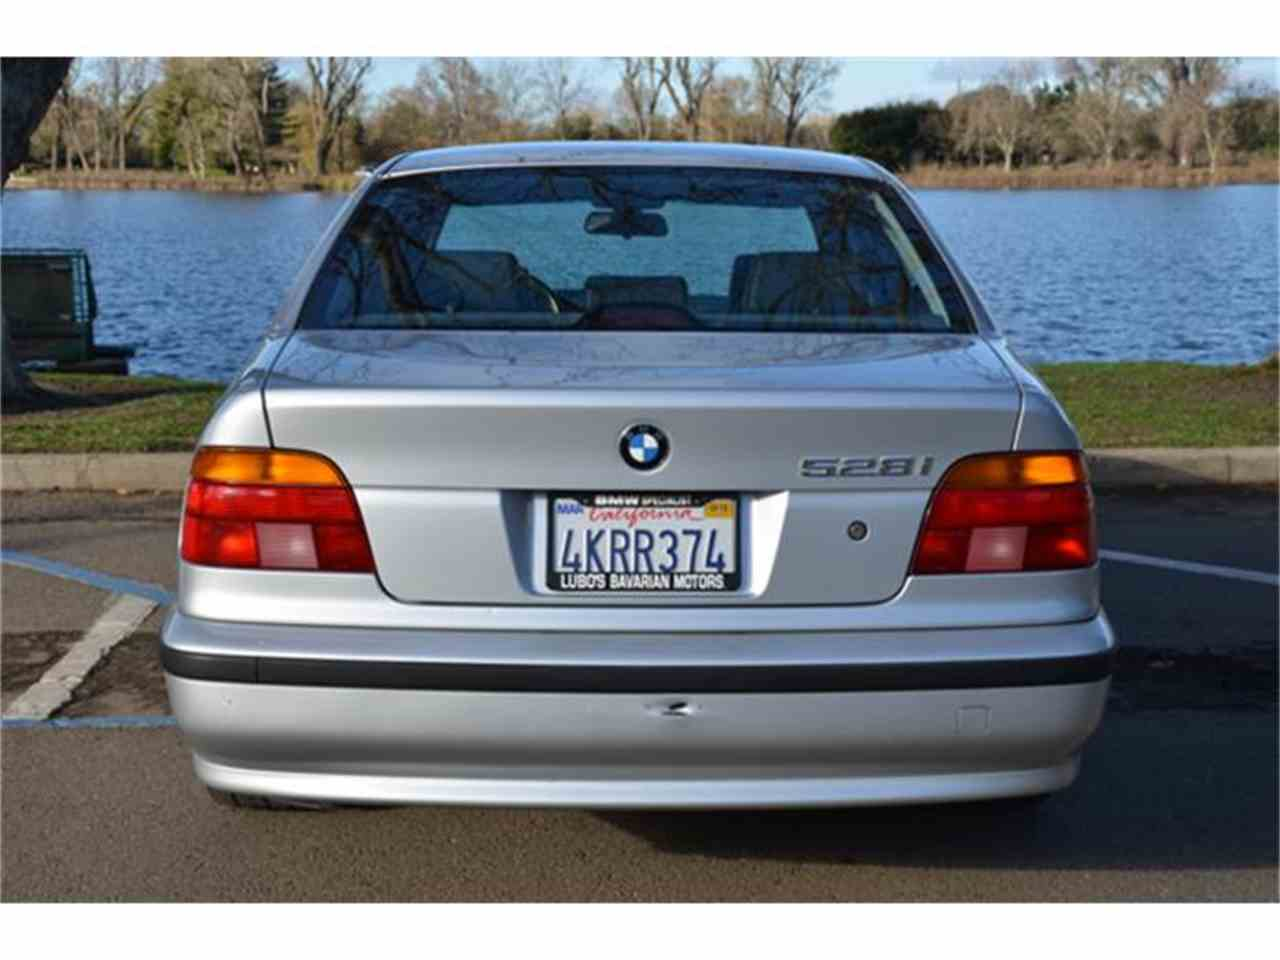 bmw auto cert auctions of for on in online vin copart i carfinder en autom title ended auction sale ga cartersville lot salvage